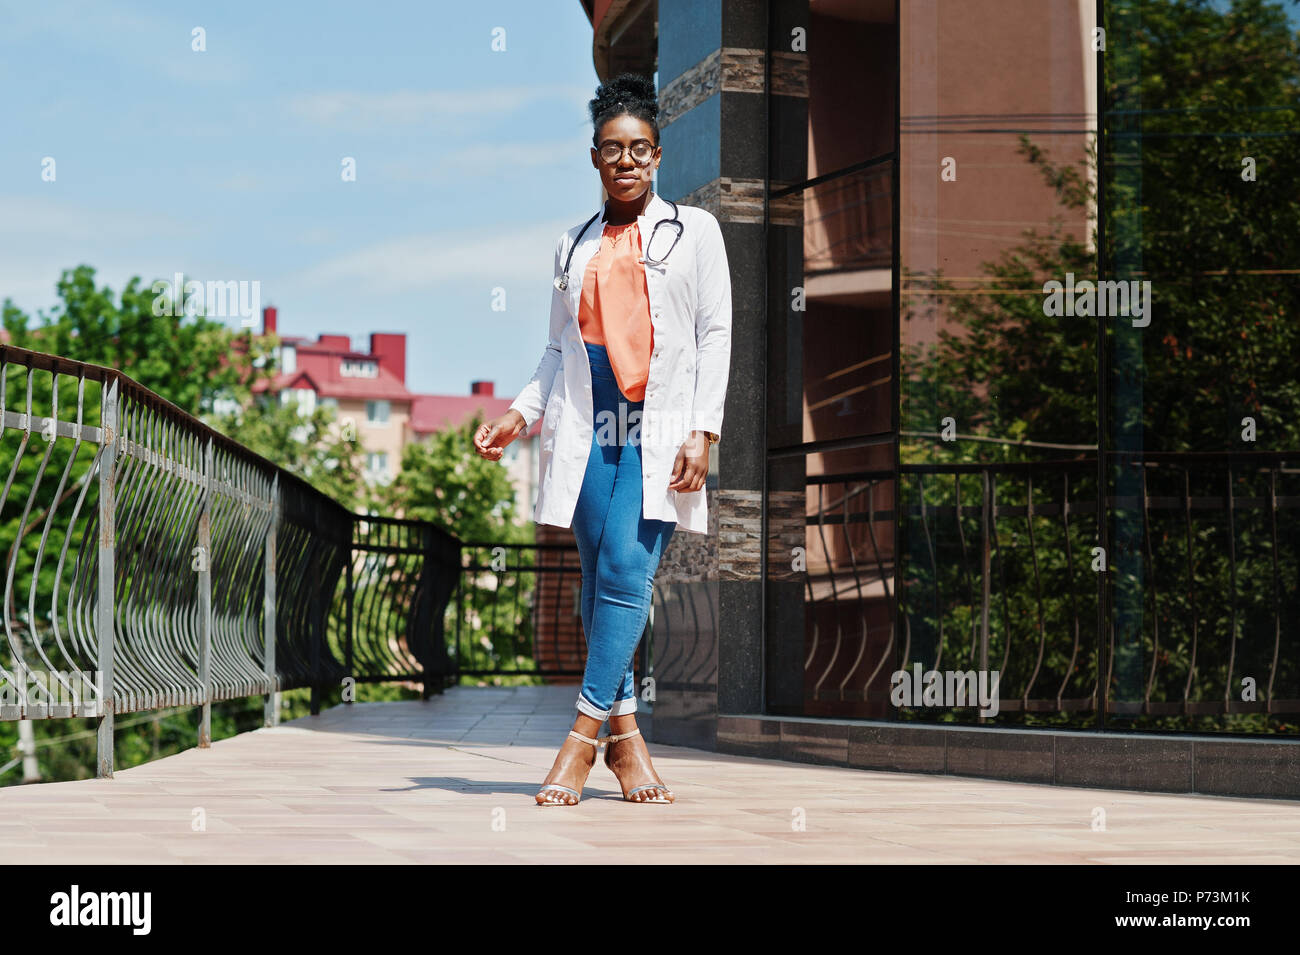 African american doctor female at lab coat, glasses with stethoscope posed outdoor against clinic. - Stock Image